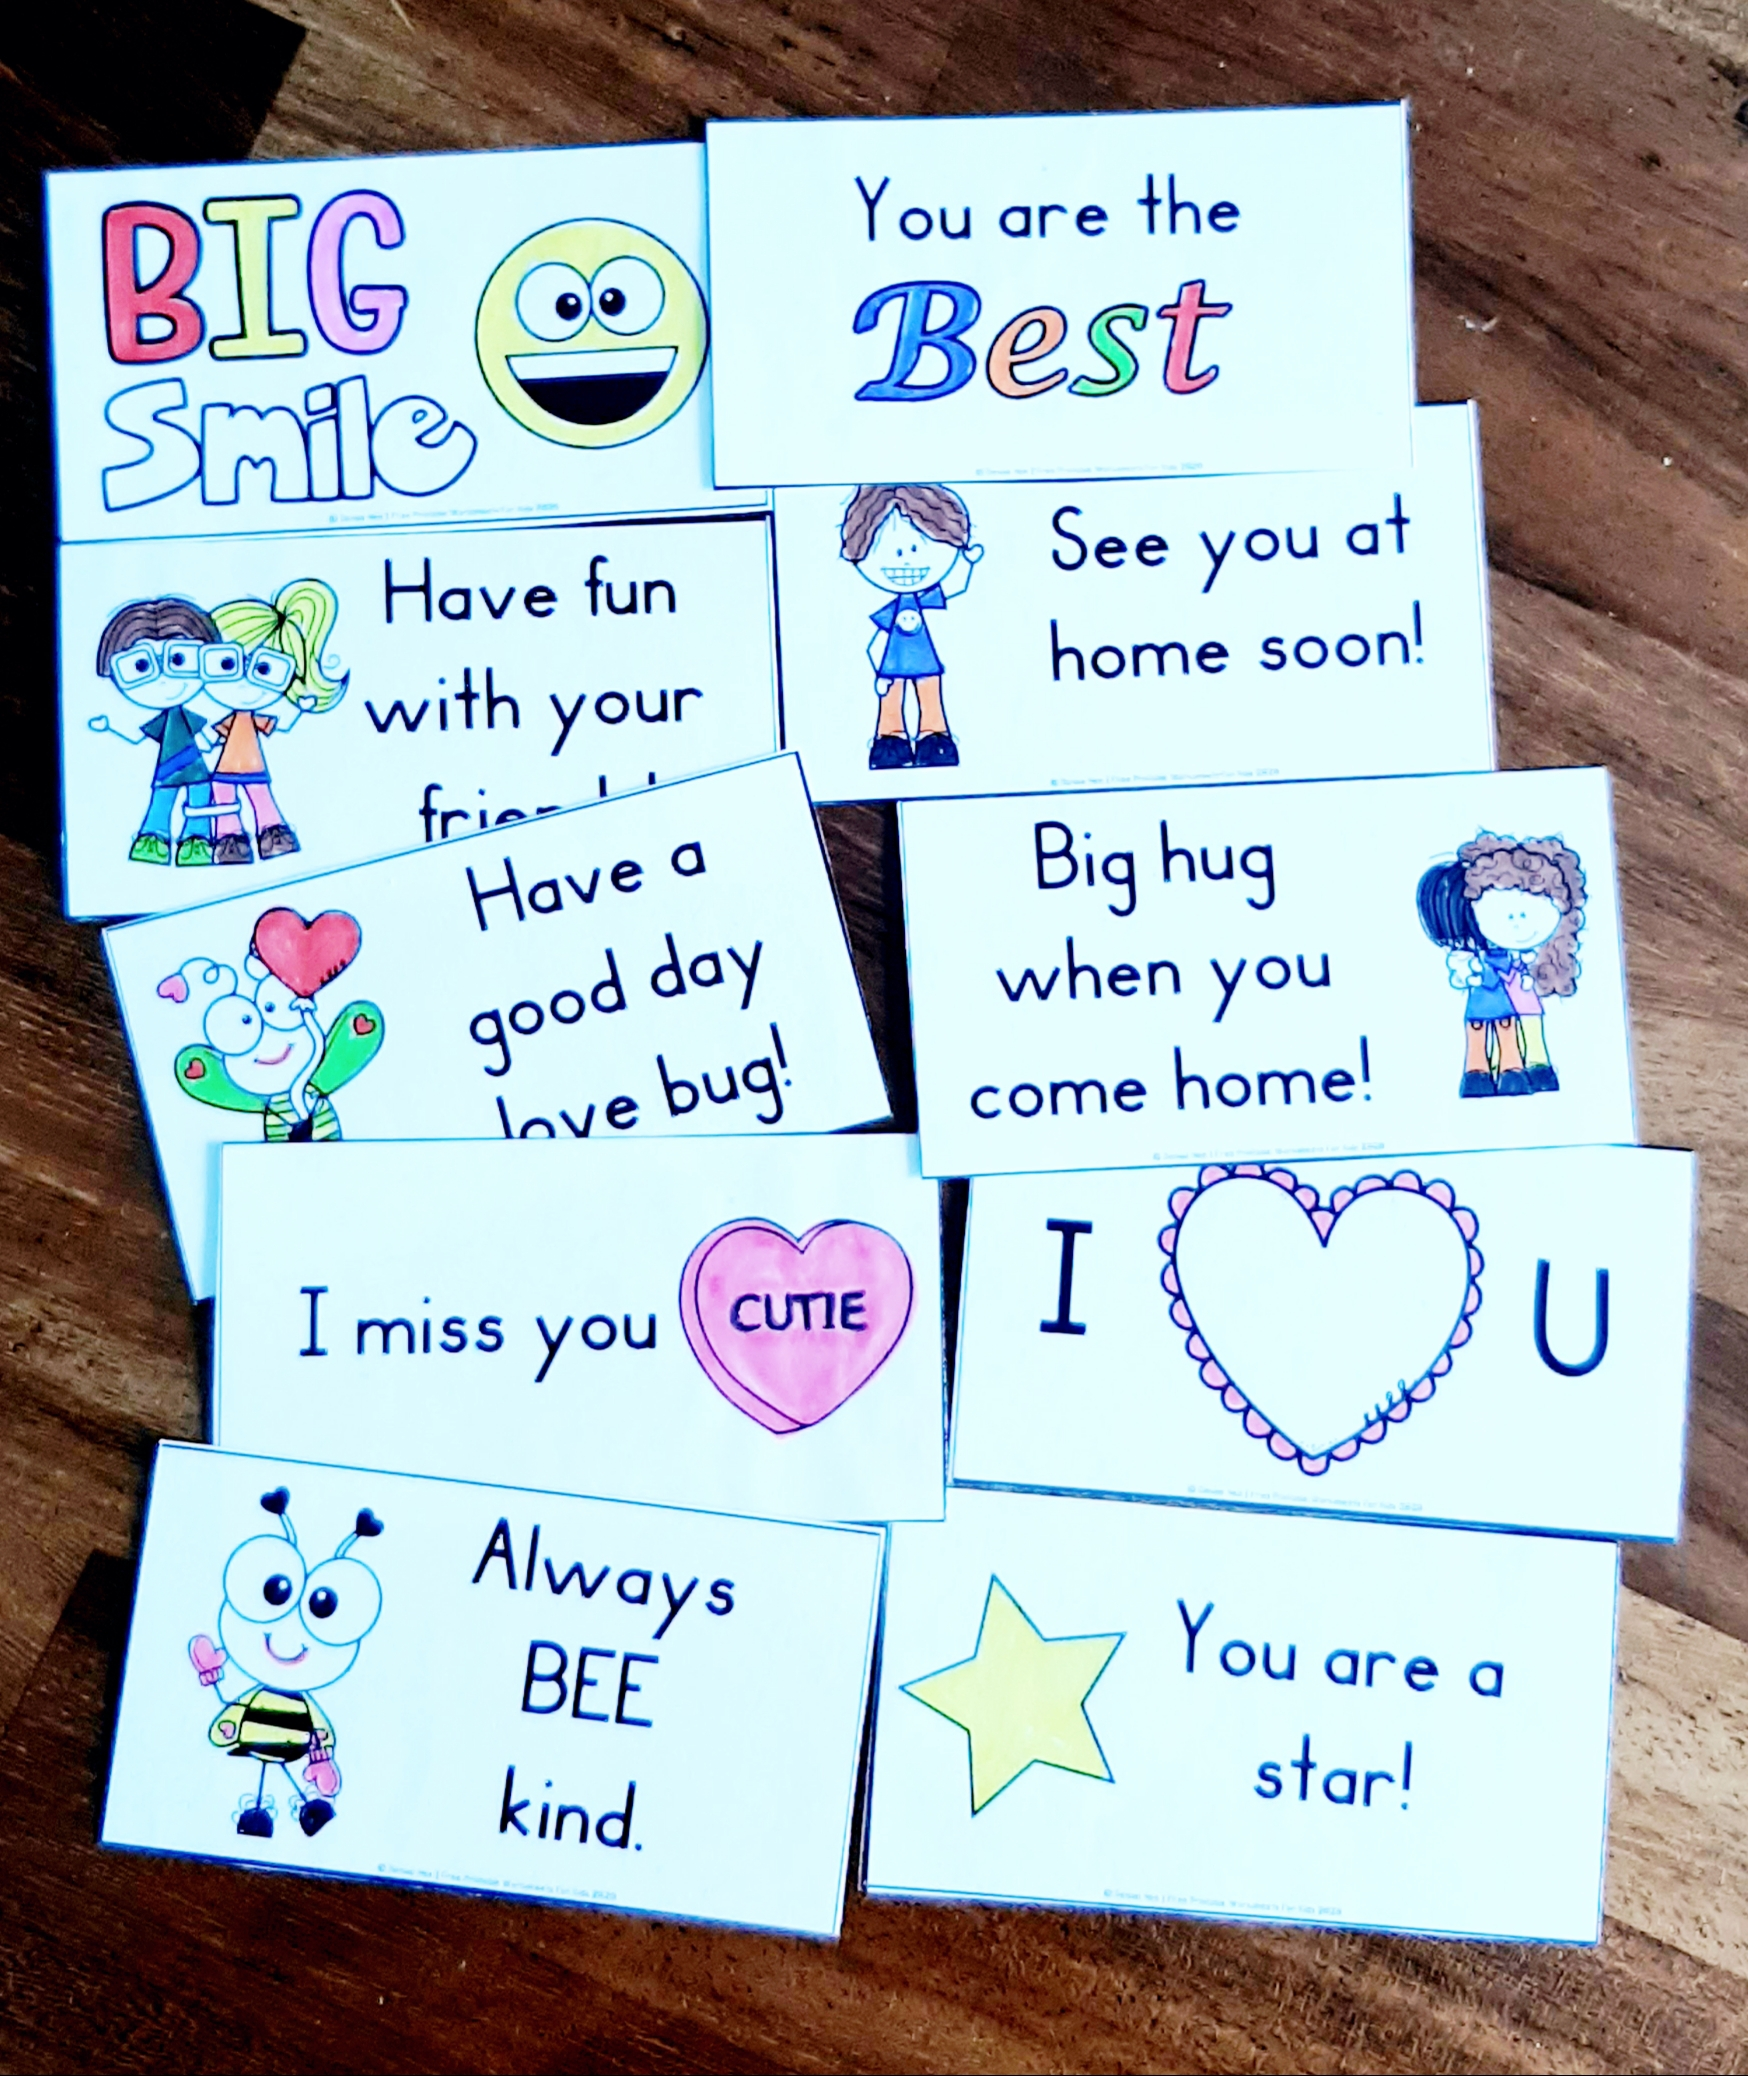 Back to School Printable Lunchbox Notes | Free Printable Worksheets For Kids | Get ready for back to school season this fall by printing out these 10 adorable lunchbox notes. Kids will love them and remember fond memories of their time in school when you send them off every morning with these.